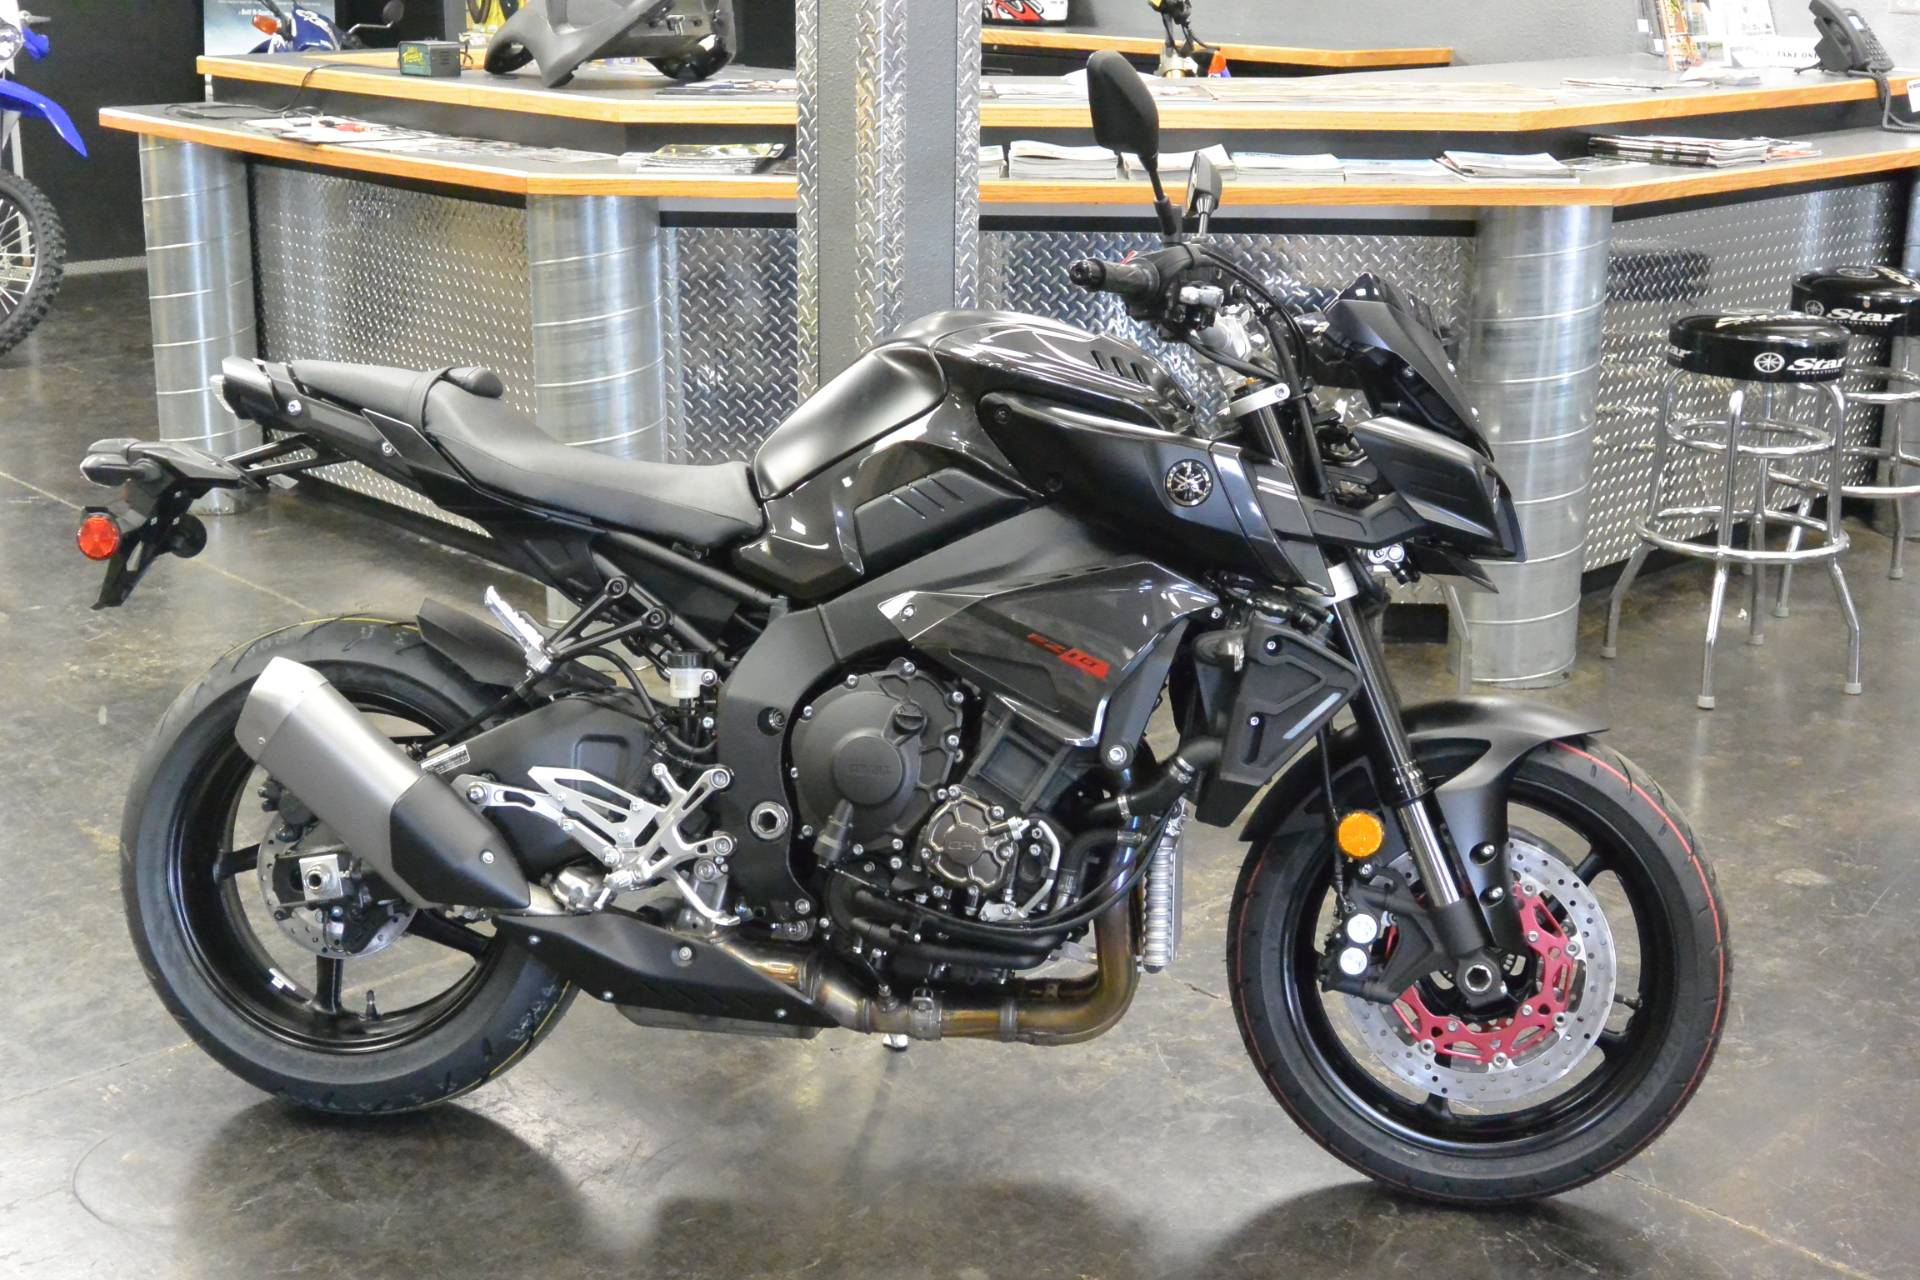 2017 Yamaha FZ10HB in Denver, Colorado